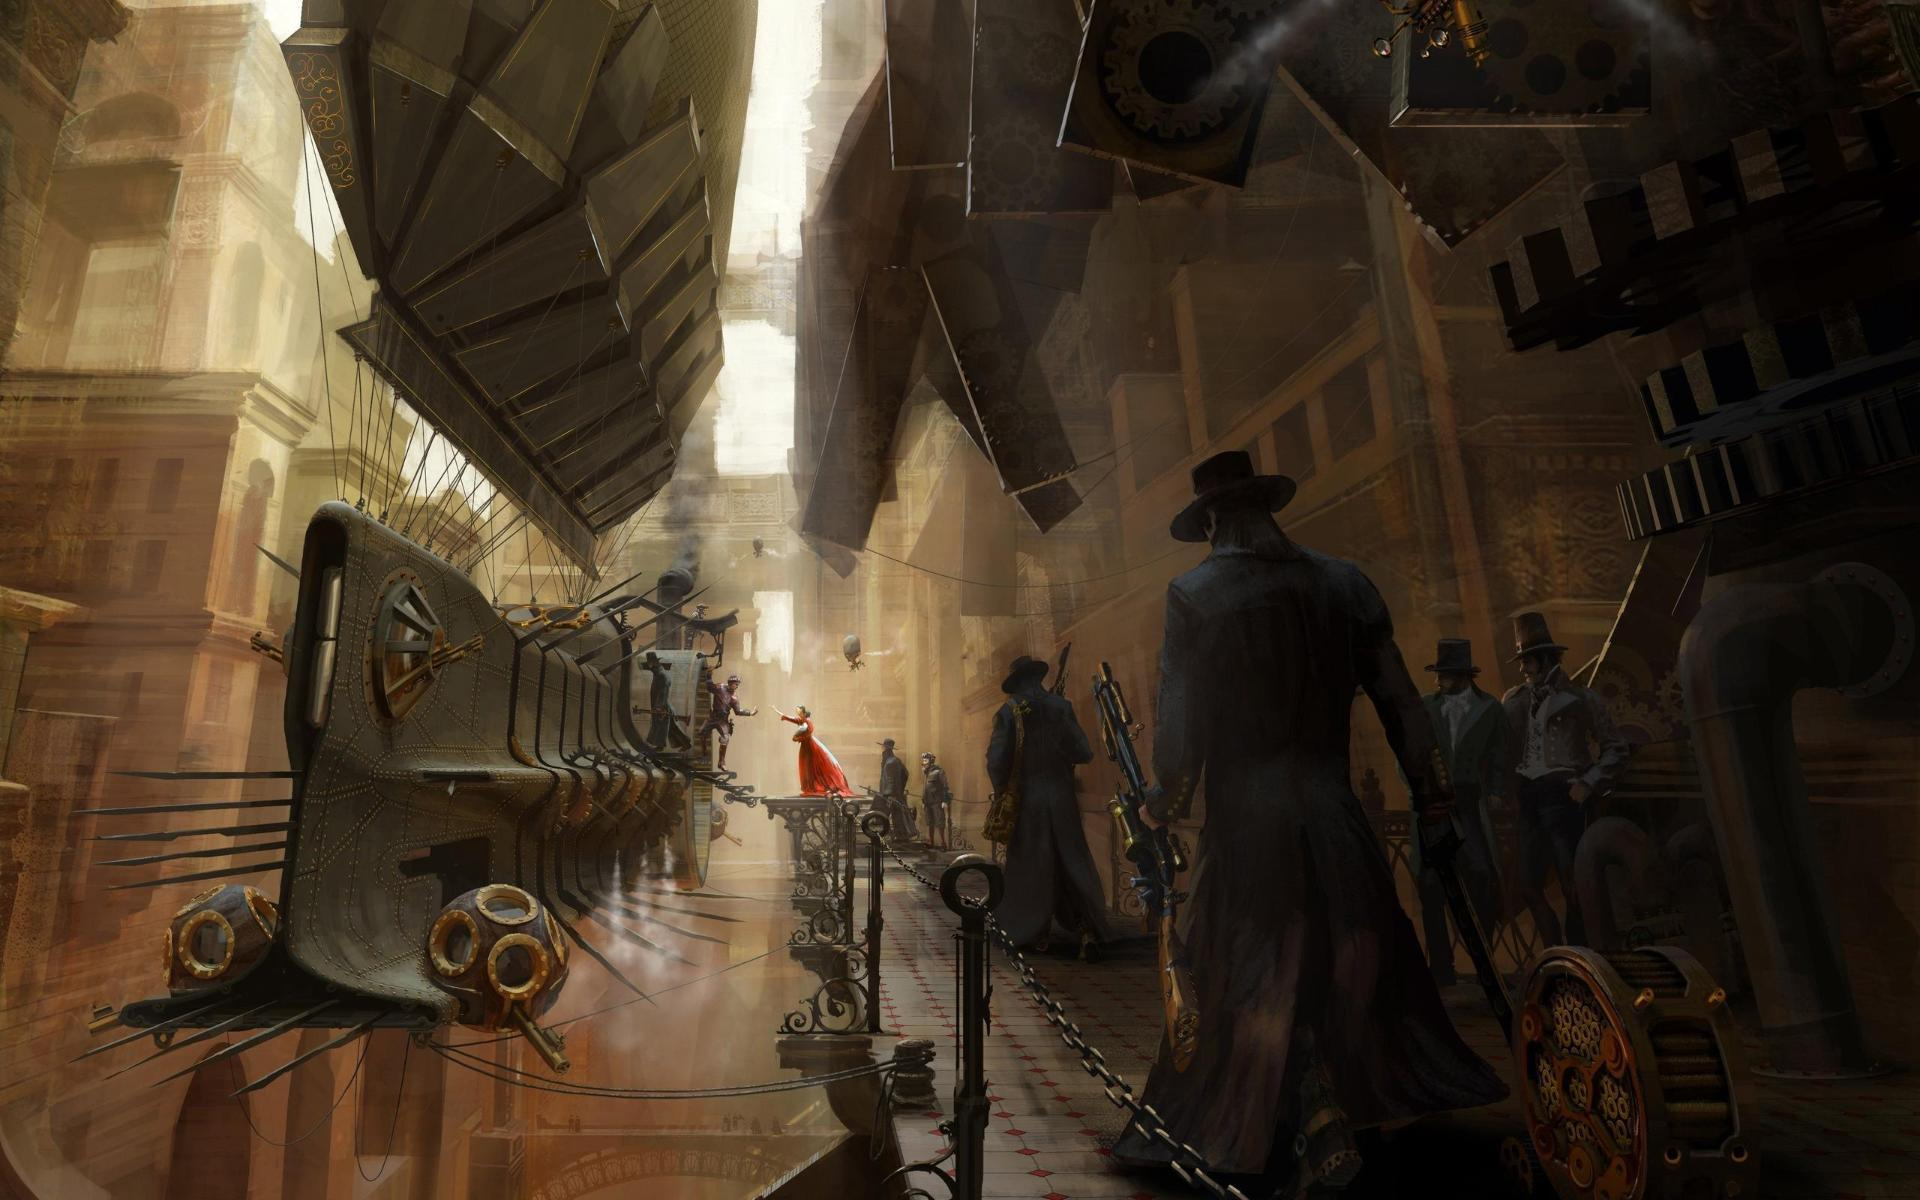 Steampunk Wallpapers 23136 HD Desktop Backgrounds and Widescreen